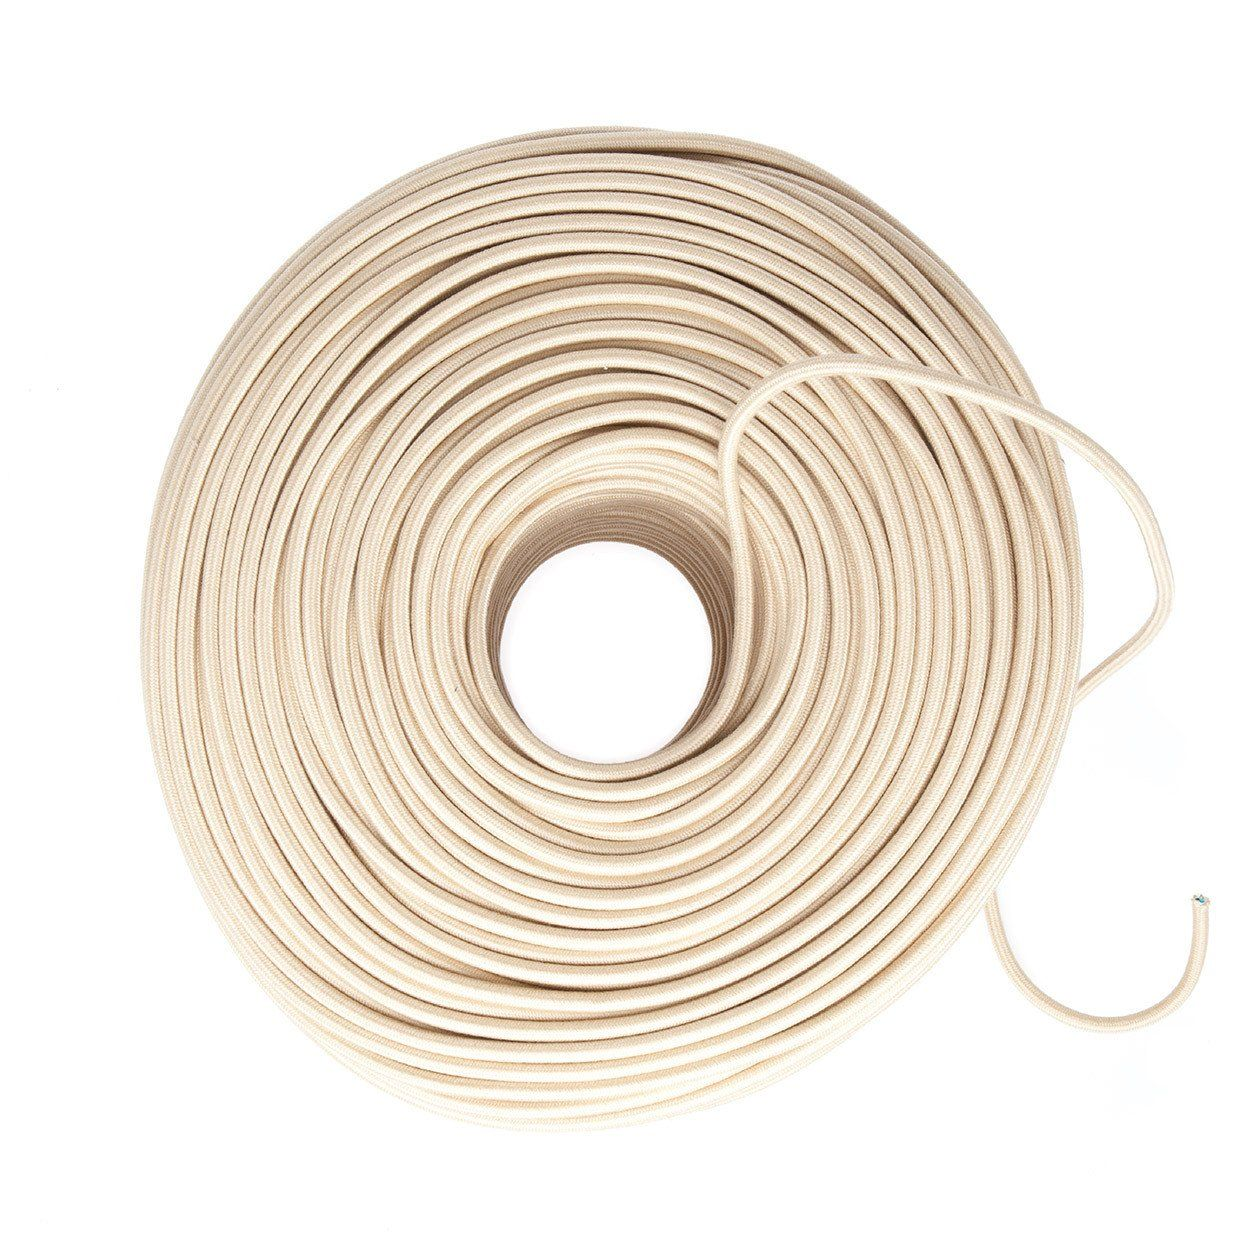 Cloth Covered Wire - Canvas (Cotton Blend) | Color Cord Company